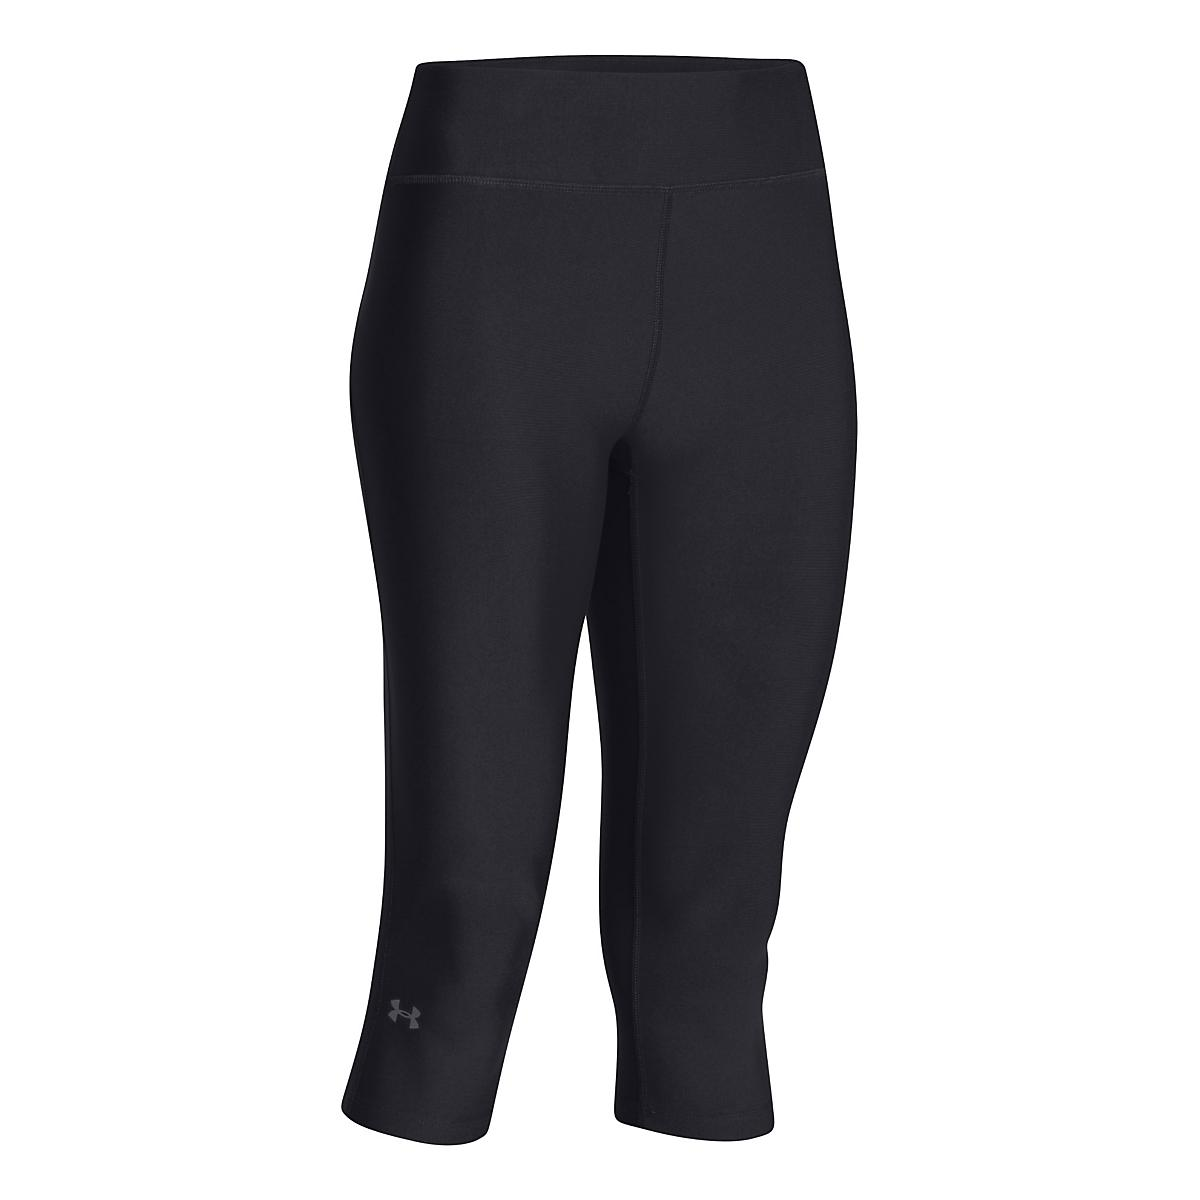 Women's Under Armour�HeatGear Armour Compression 17 Capri